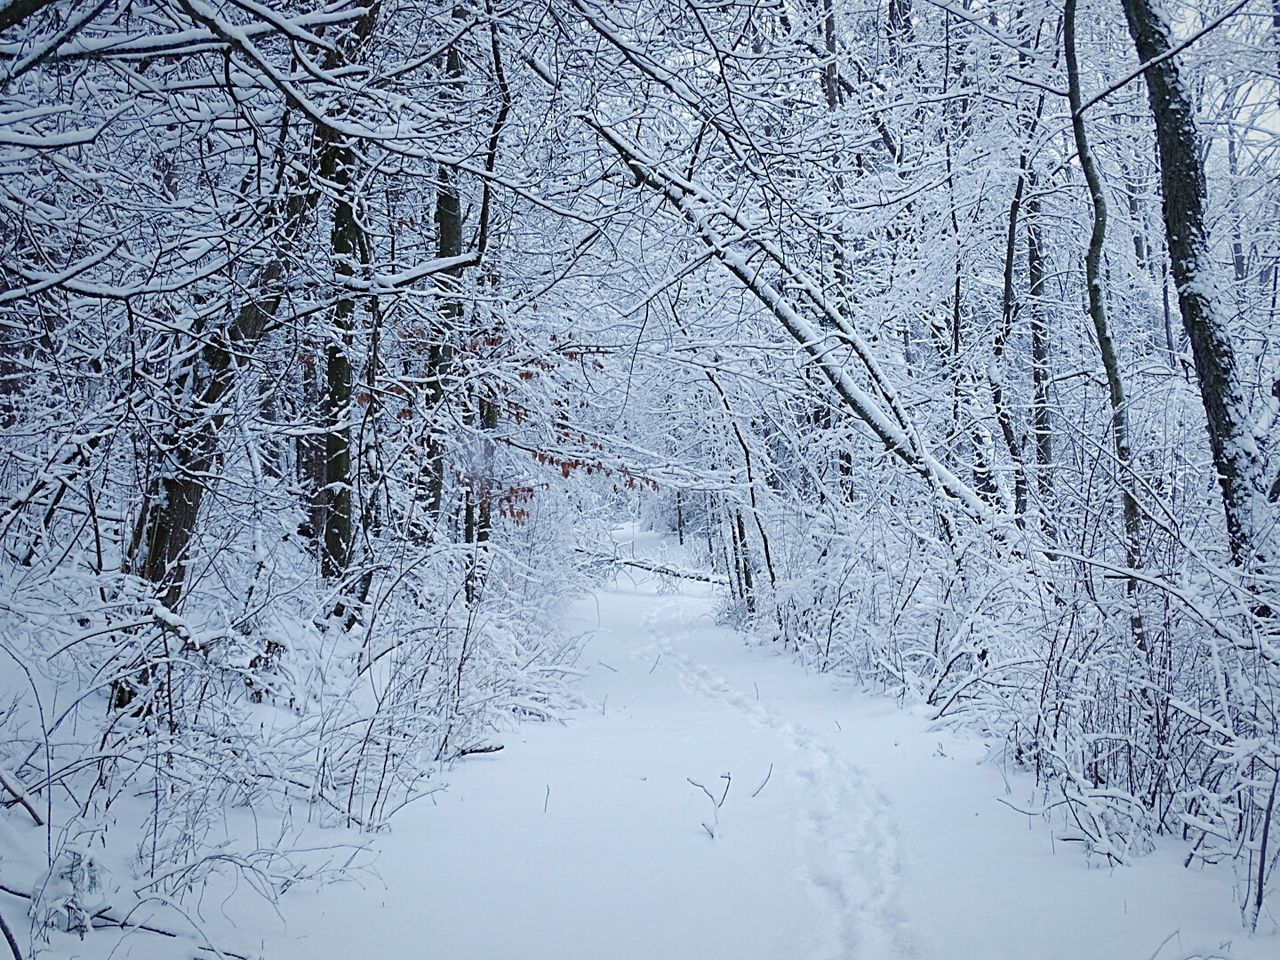 snow, cold temperature, winter, white color, nature, bare tree, snowing, tranquil scene, frozen, beauty in nature, tree, tranquility, remote, weather, polar climate, no people, branch, frost, landscape, backgrounds, scenics, forest, freshness, day, blue, beauty, spruce tree, snowdrift, outdoors, snowflake, sky